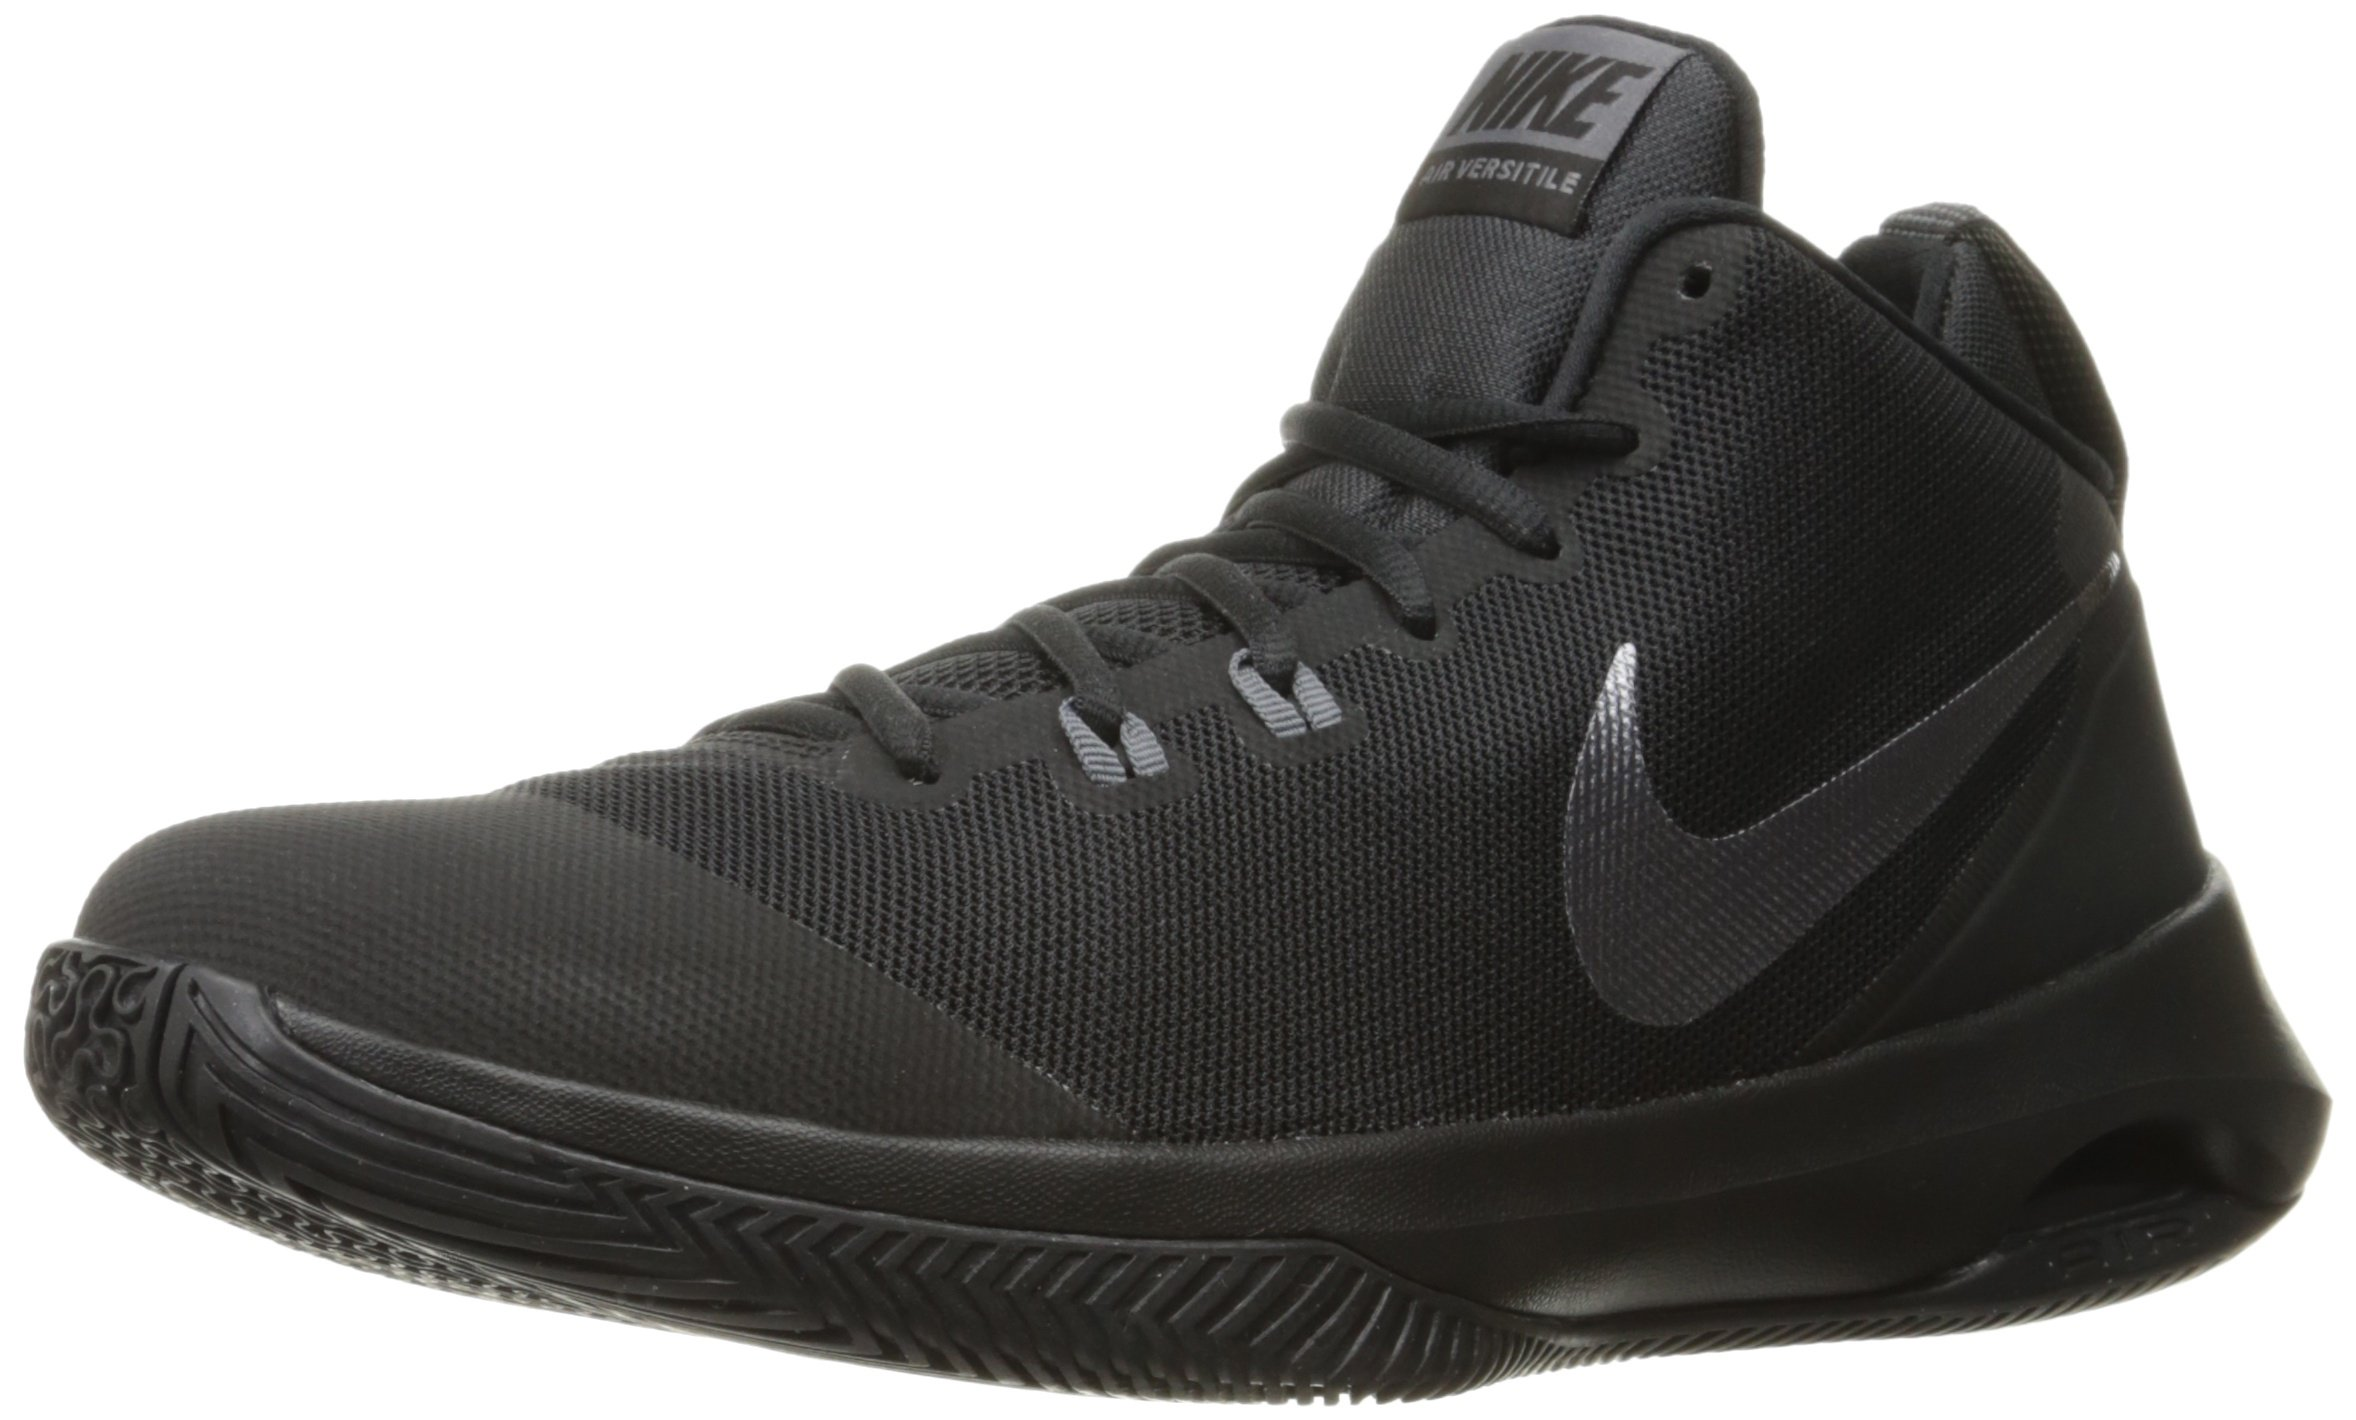 NIKE Men's Air Versitile Nubuck Basketball Shoe, Black/Metallic Dark Grey/Dark Grey, 10.5 D(M) US by NIKE